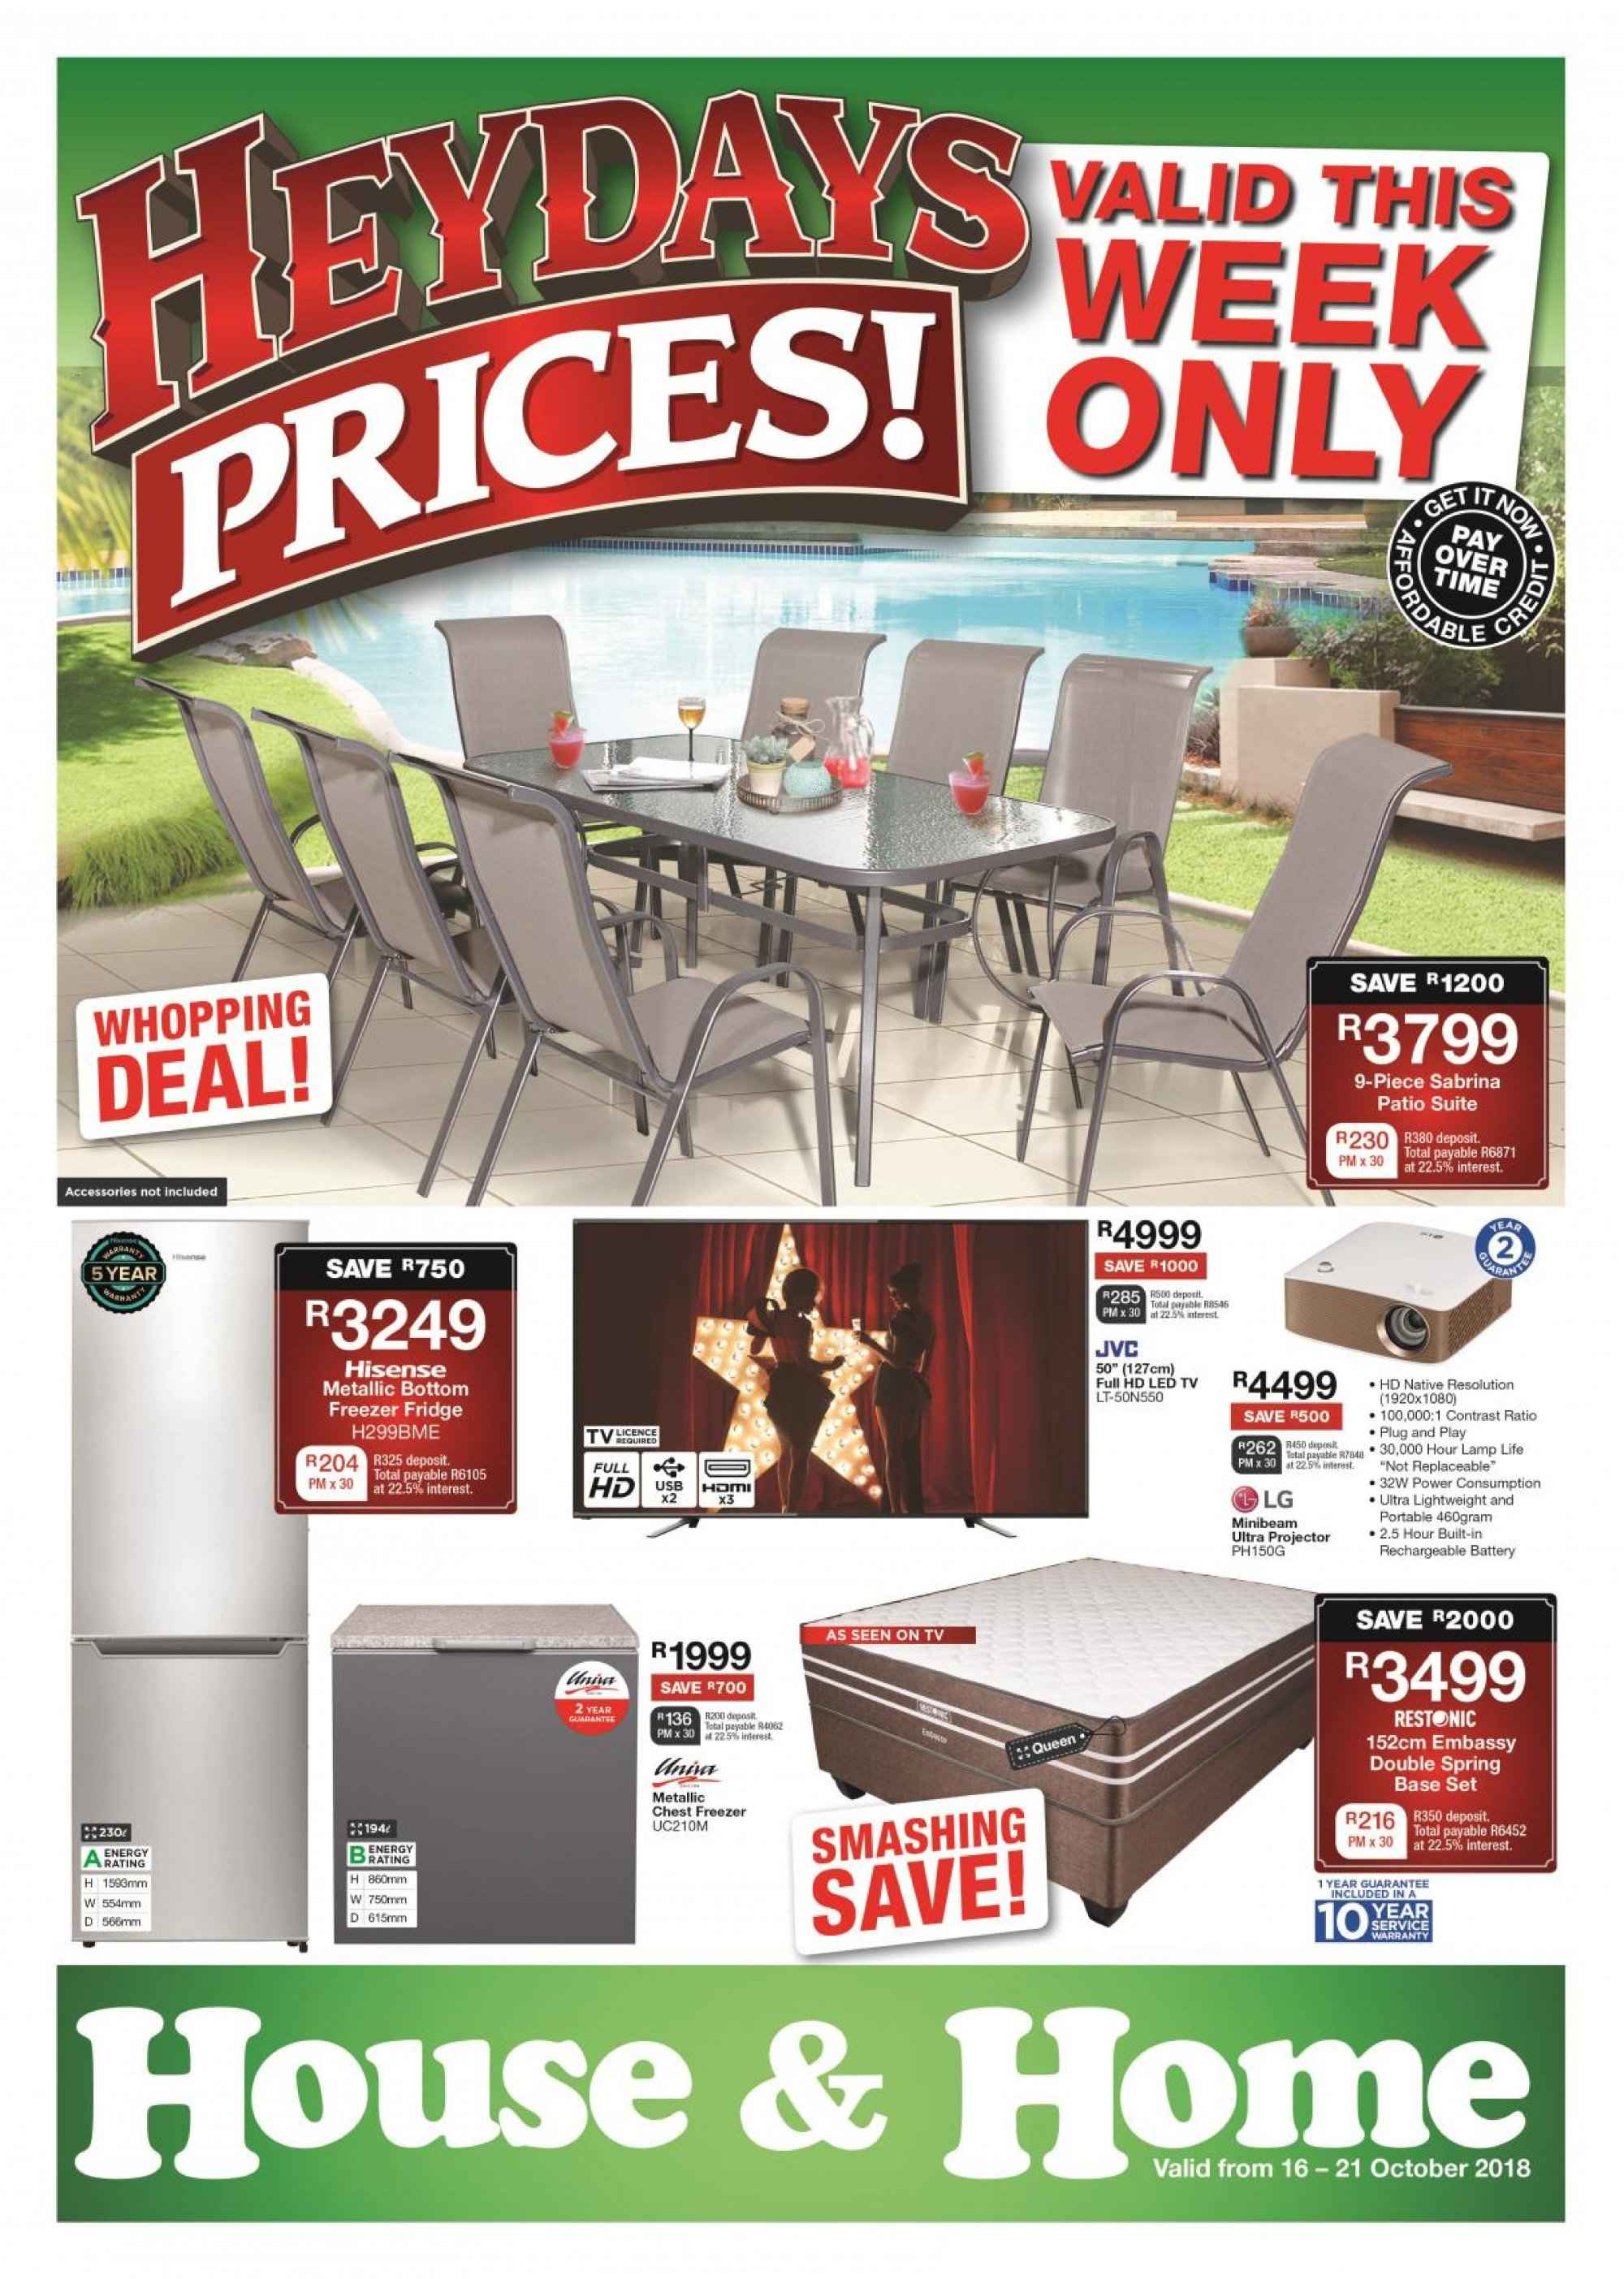 House & Home special - 10.16.2018 - 10.21.2018 - Sales products - battery, freezer, full hd, lamp, led tv, fridge, patio, projector, chest freezer. Page 1.